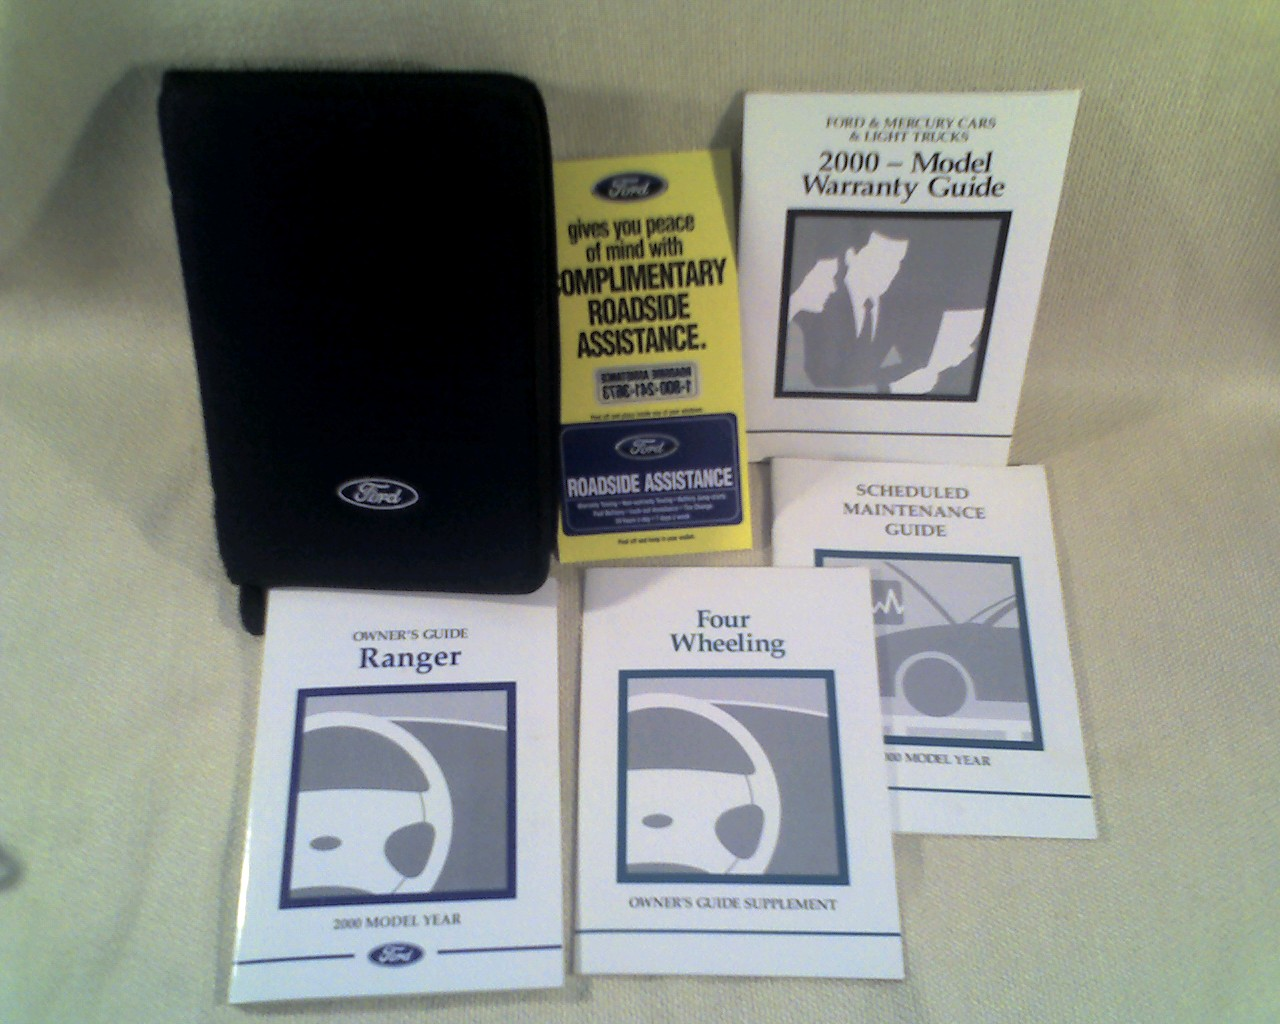 ford owners manual rh cars etc com 2002 Ford Ranger Scheduled Maintenance Guide 2013 Ford Explorer Maintenance Schedule